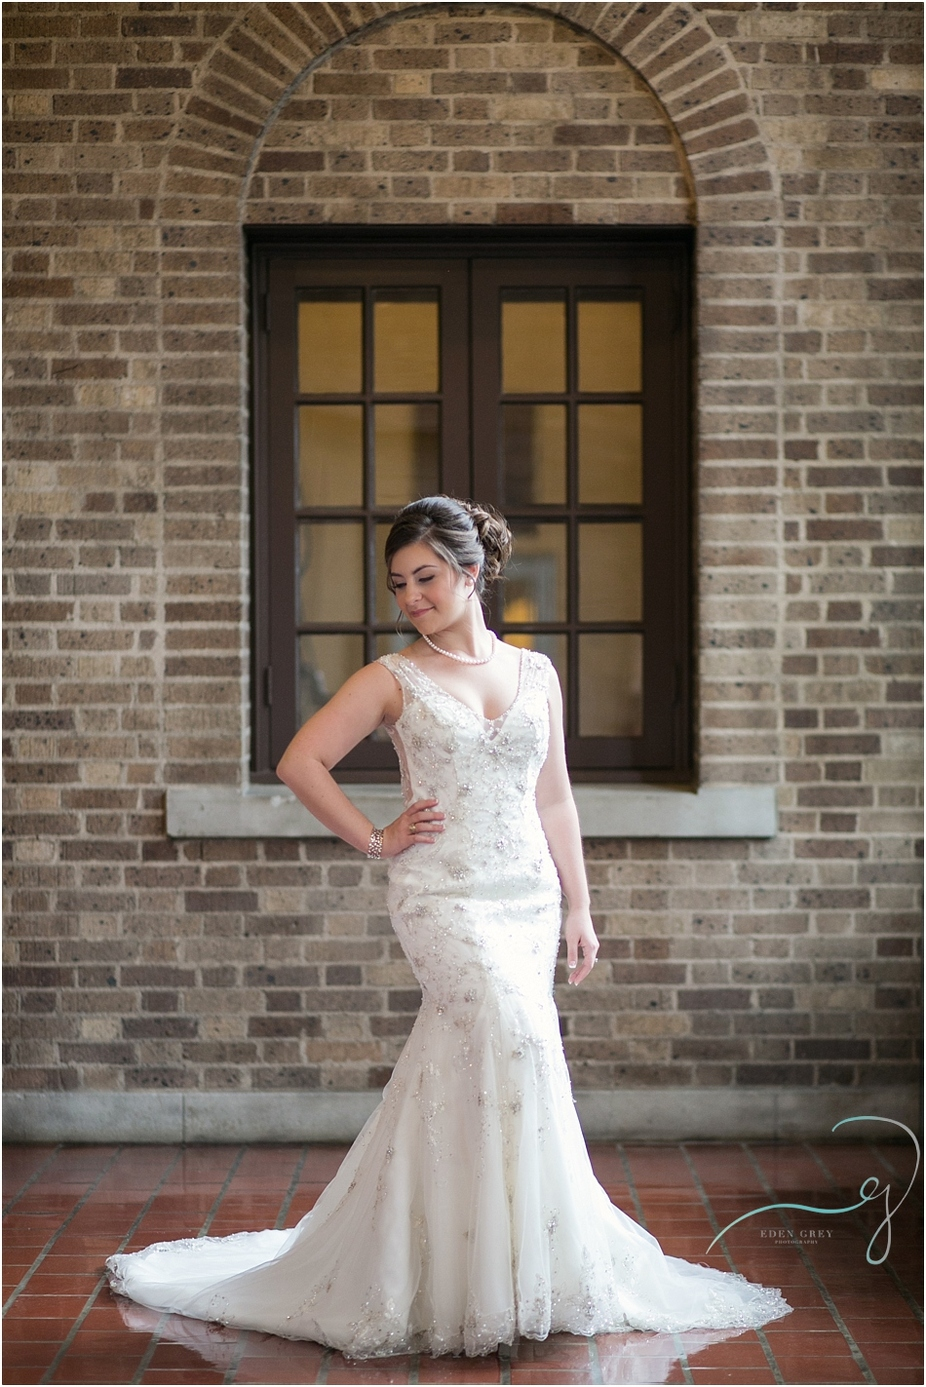 Julia Ideson Library Bridal Portraits